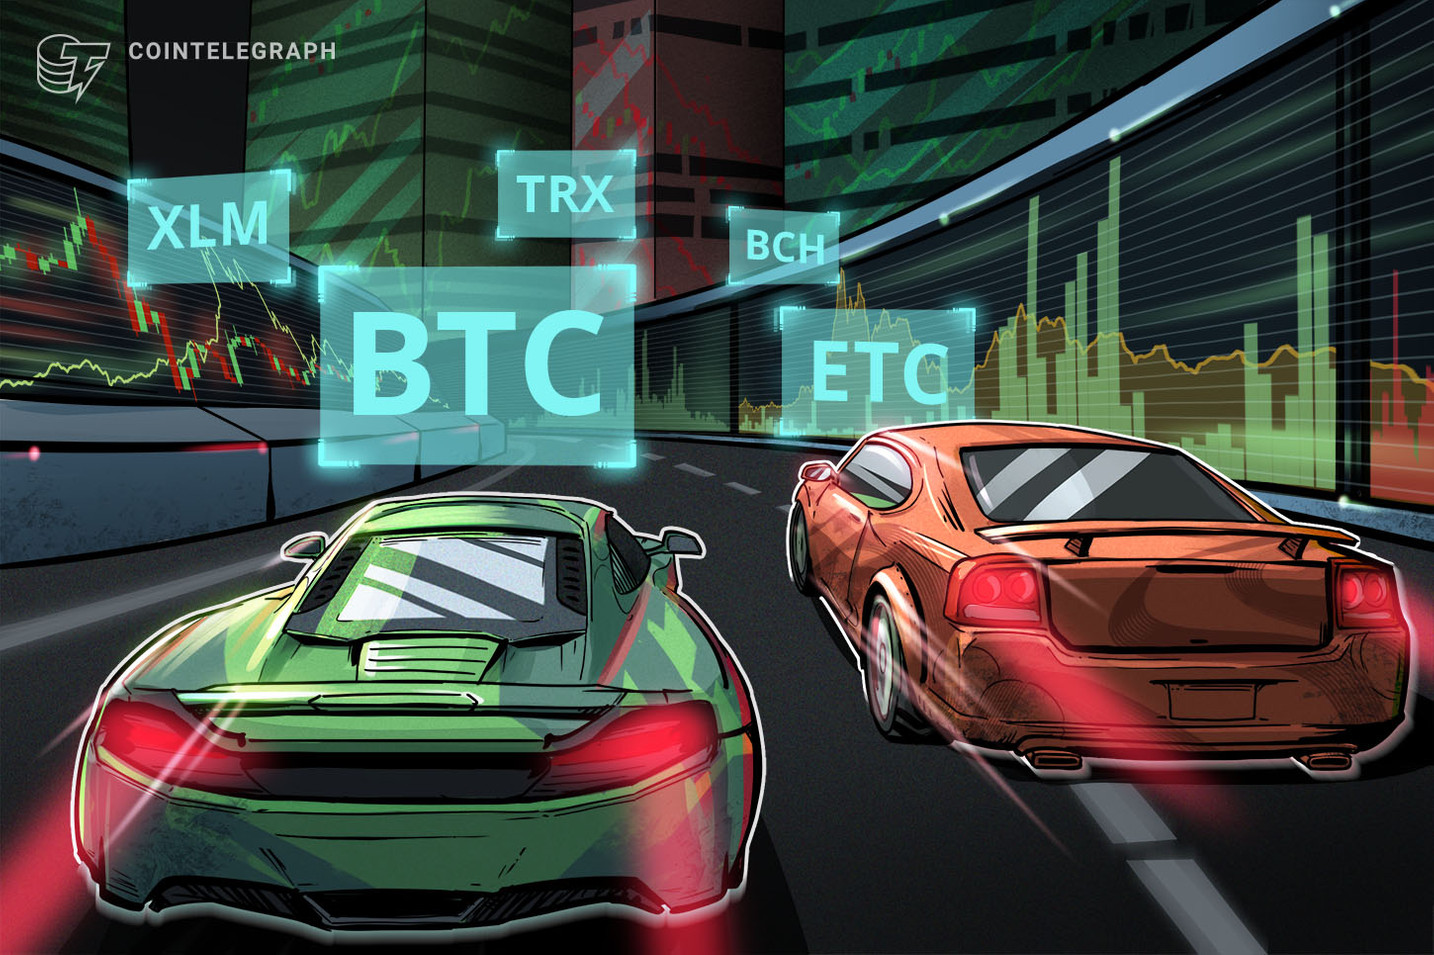 Top 5 Cryptocurrencies to Watch This Week: BTC, ETC, TRX, BCH, XLM